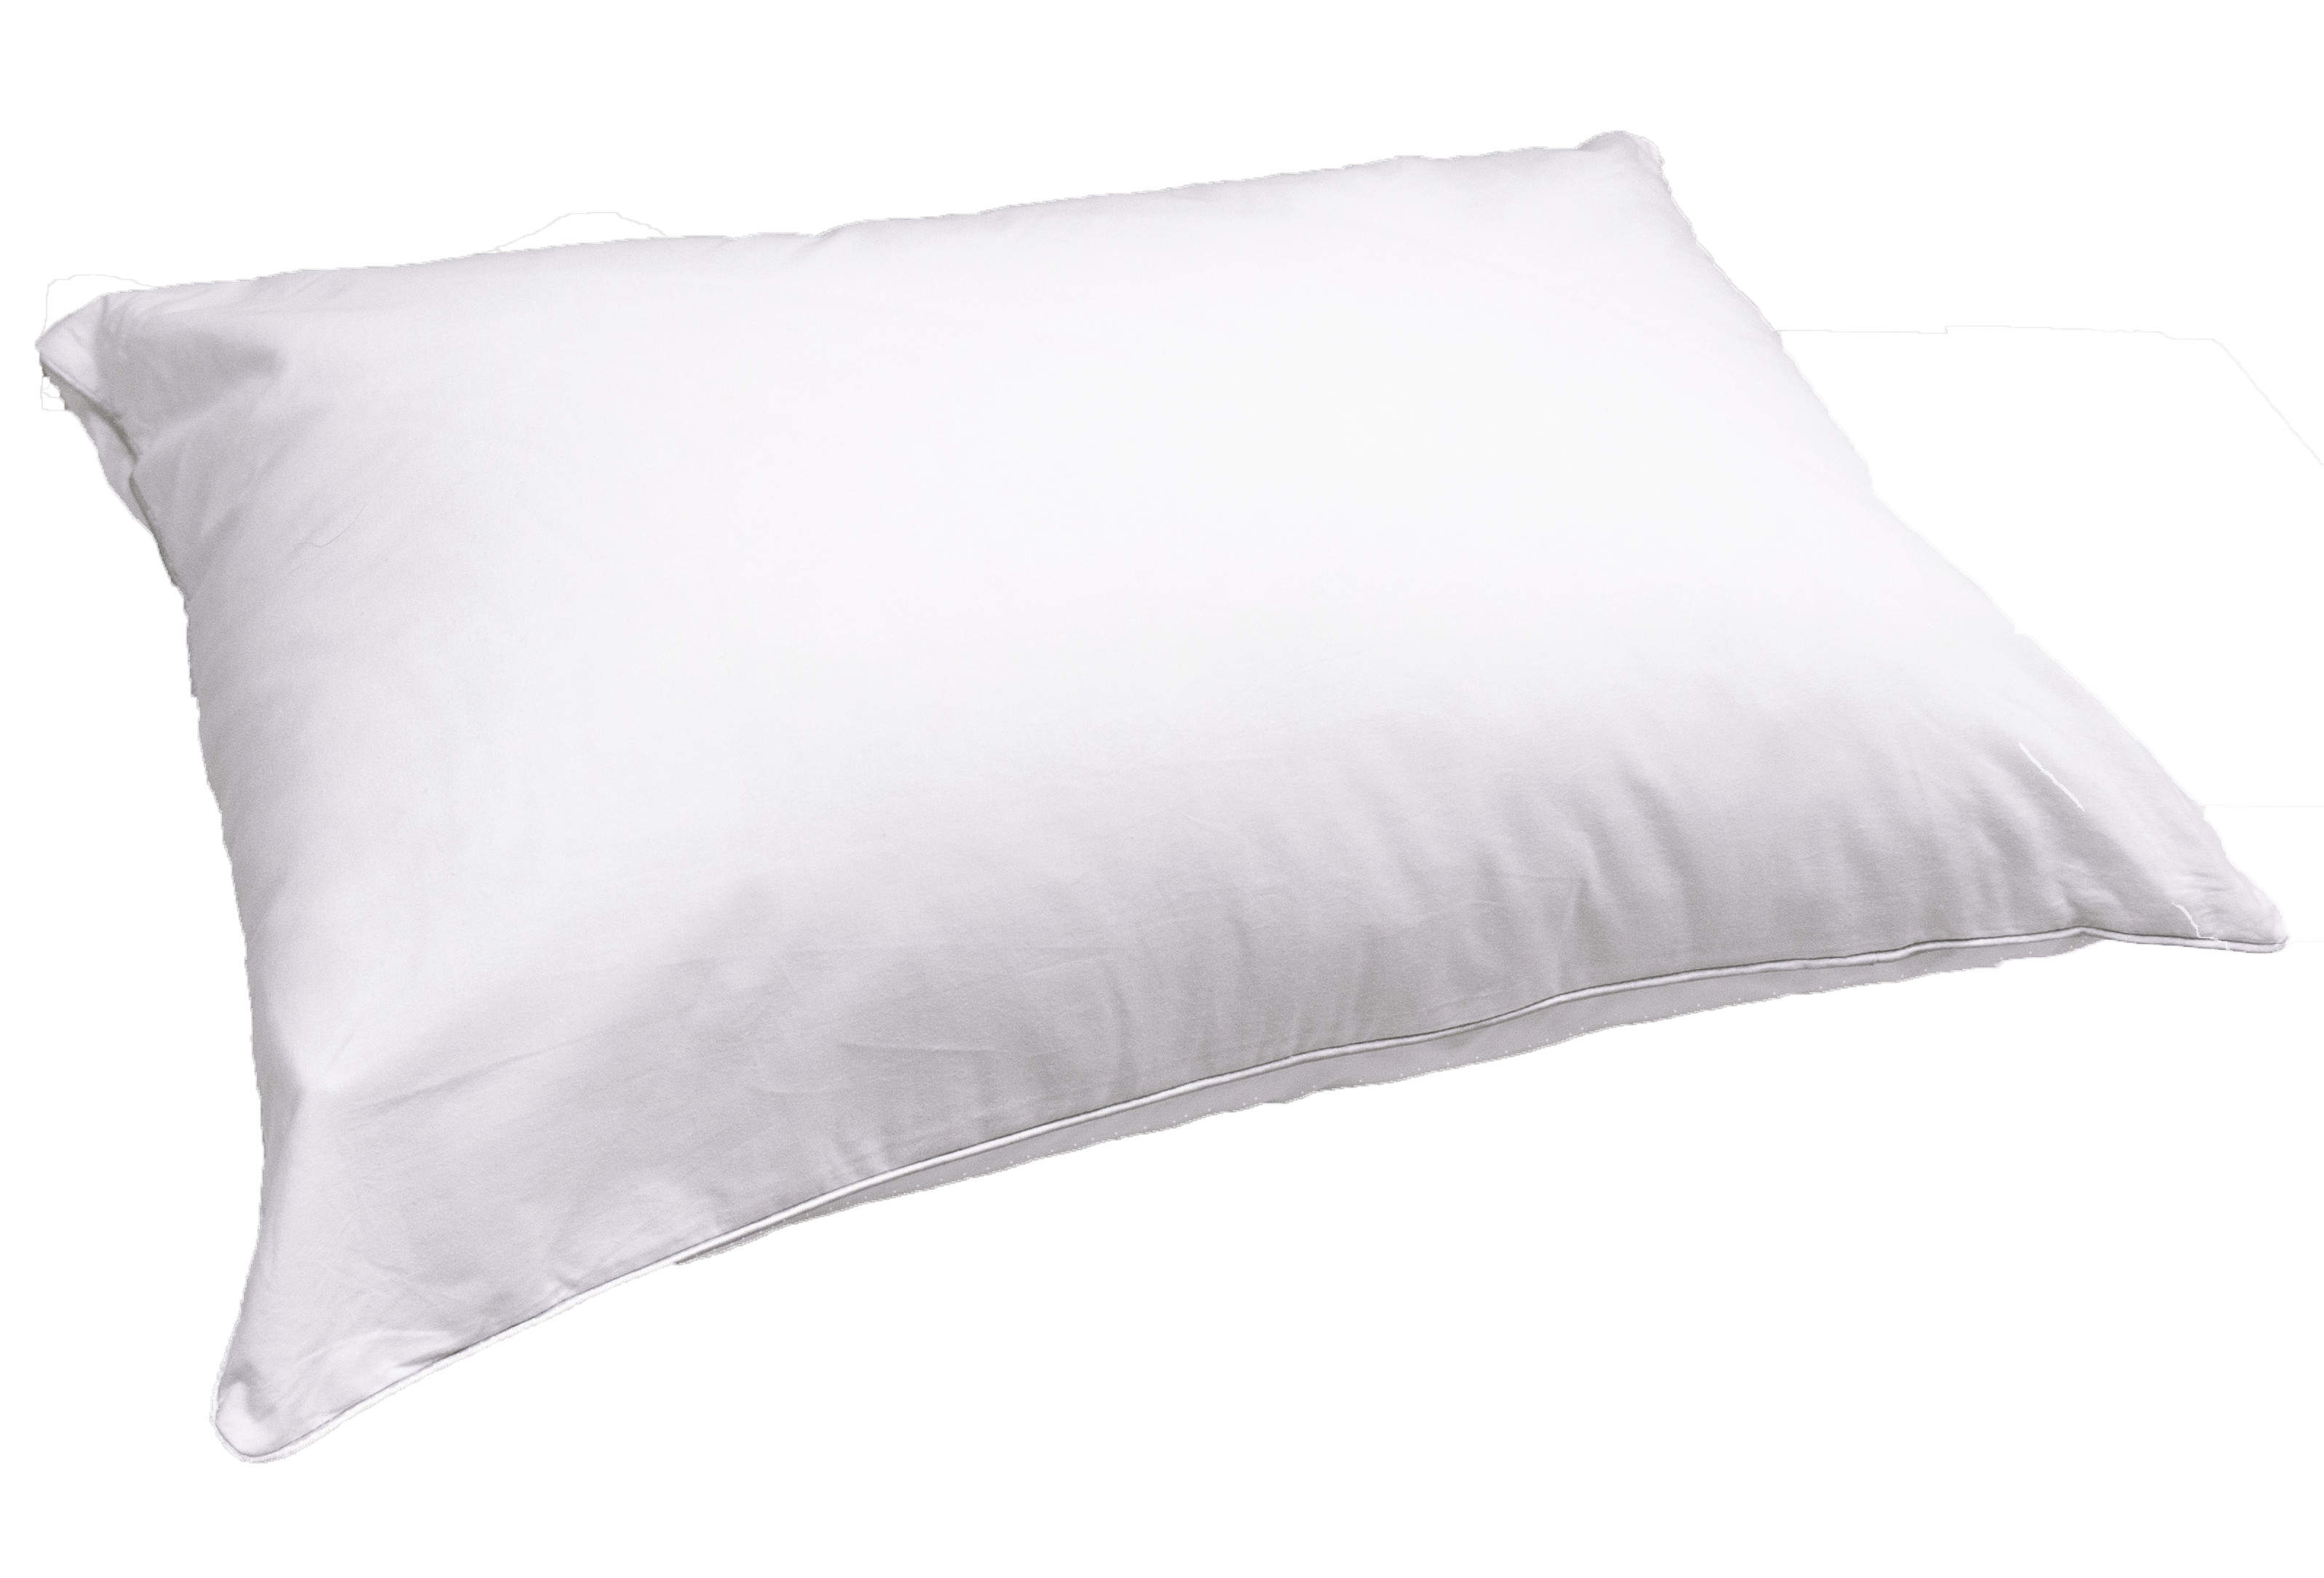 dreamGUARD Memory Foam Pillow